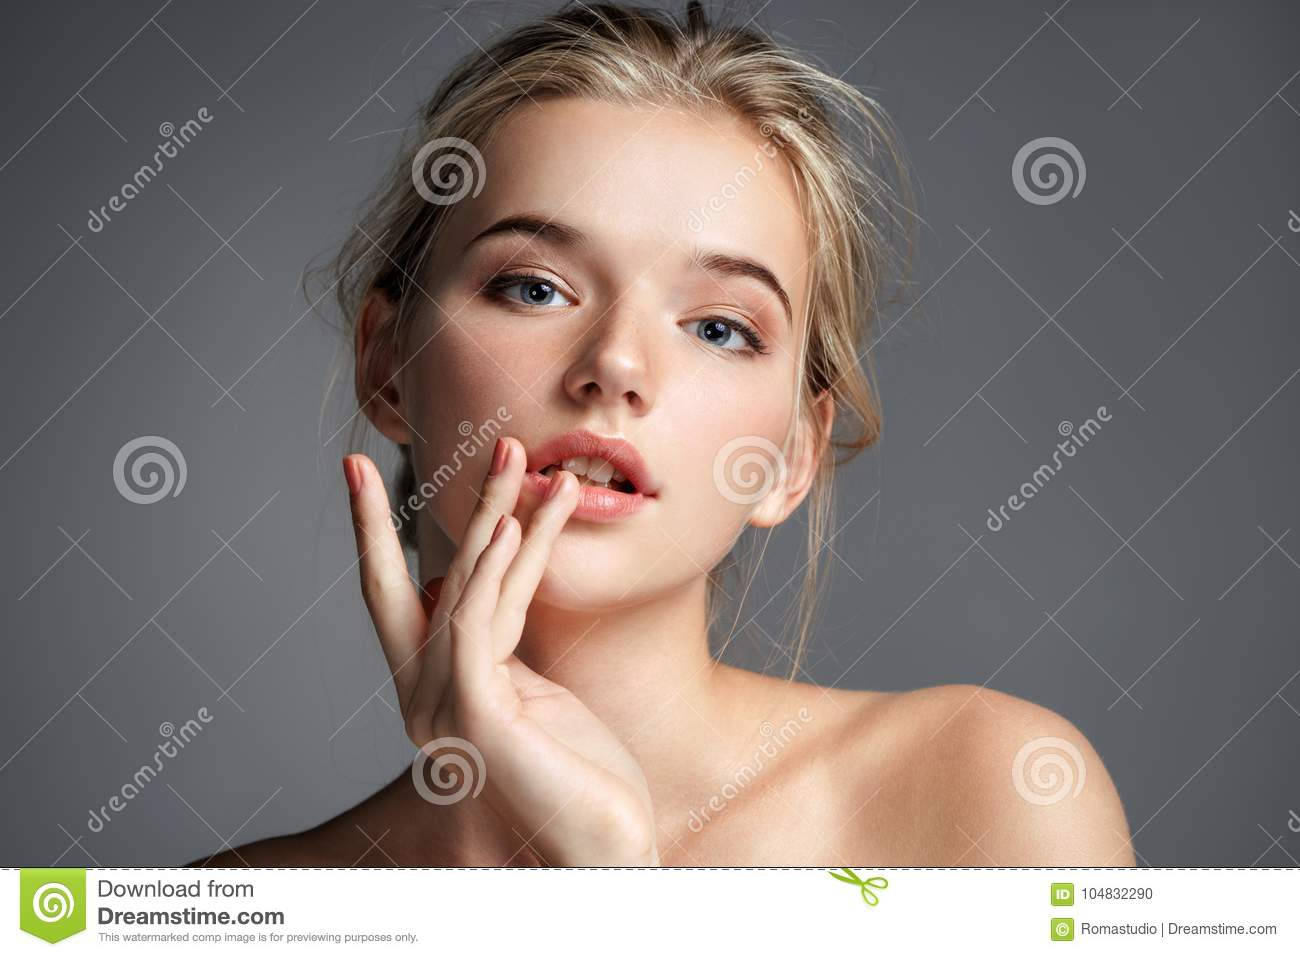 Image with beautiful blonde girl touching her lips